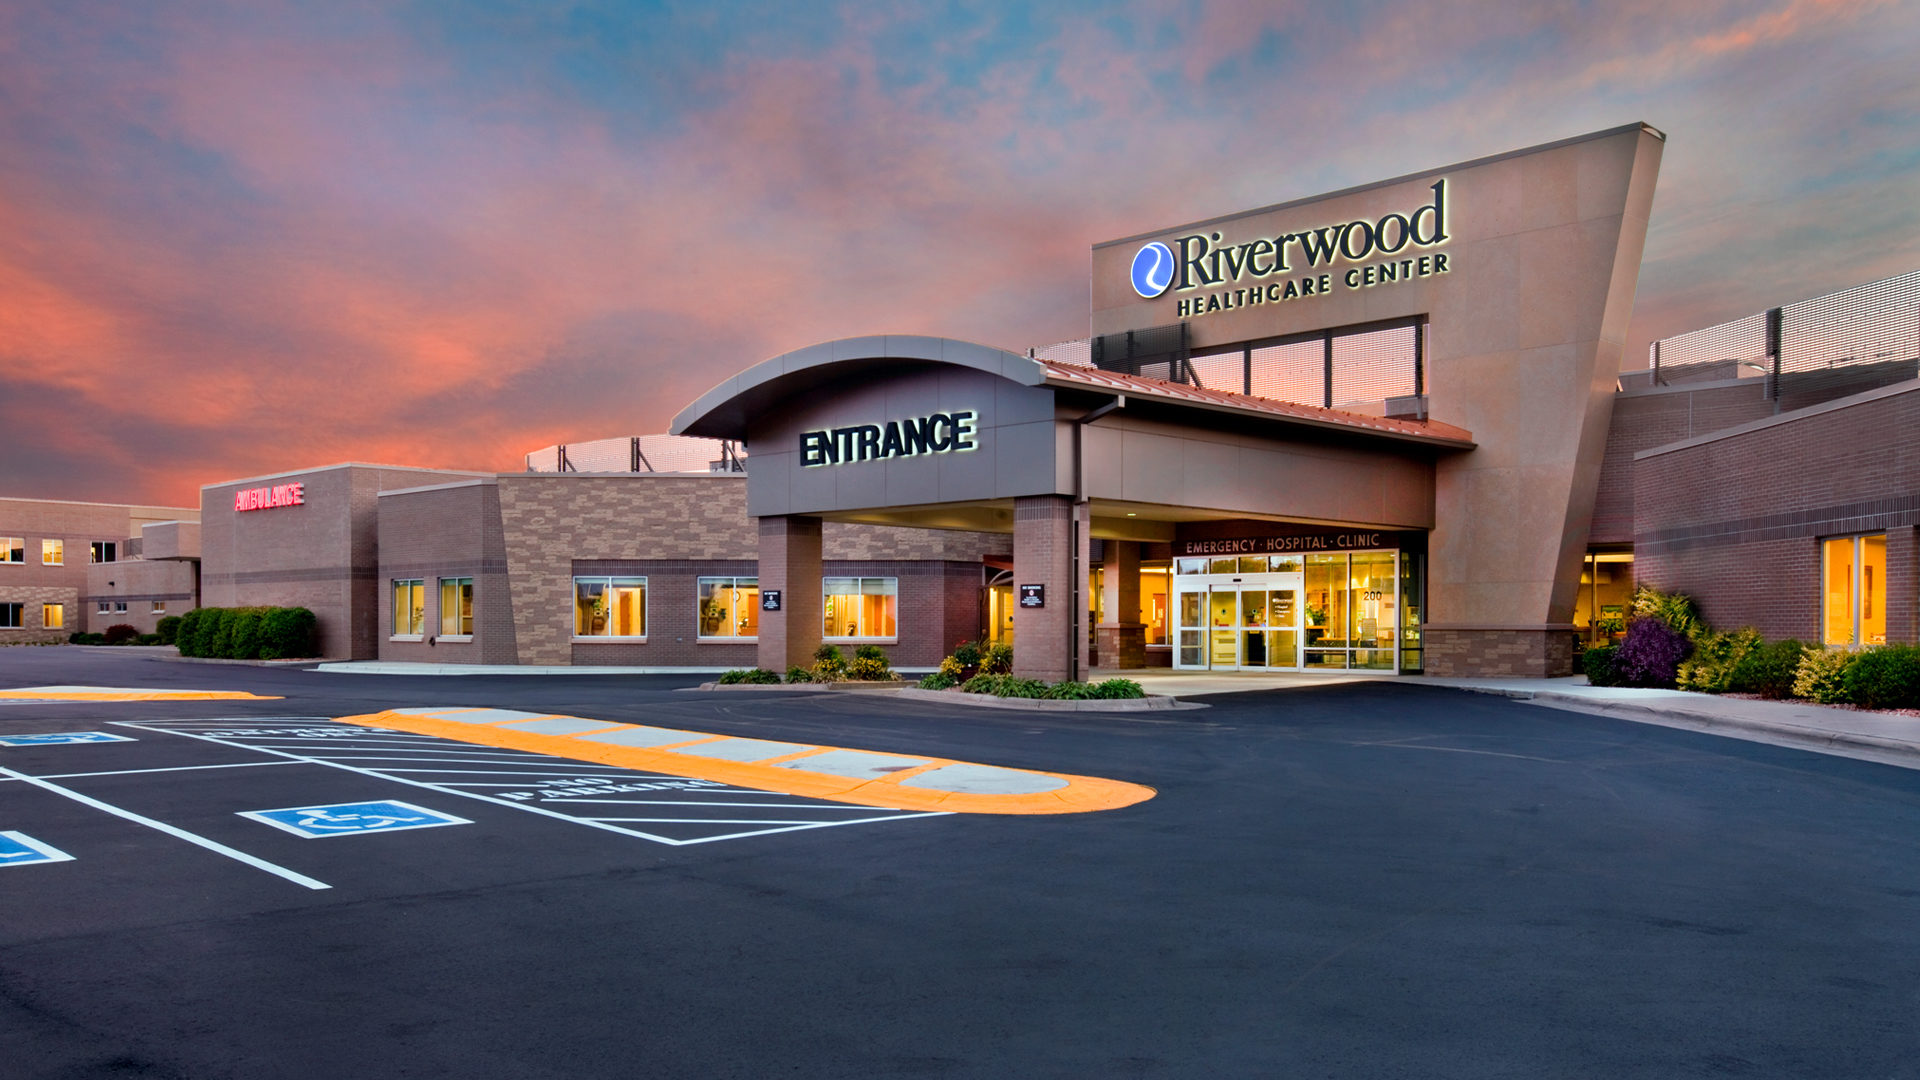 Riverwood Health Care Center Aitkin MN Exterior Entrance View